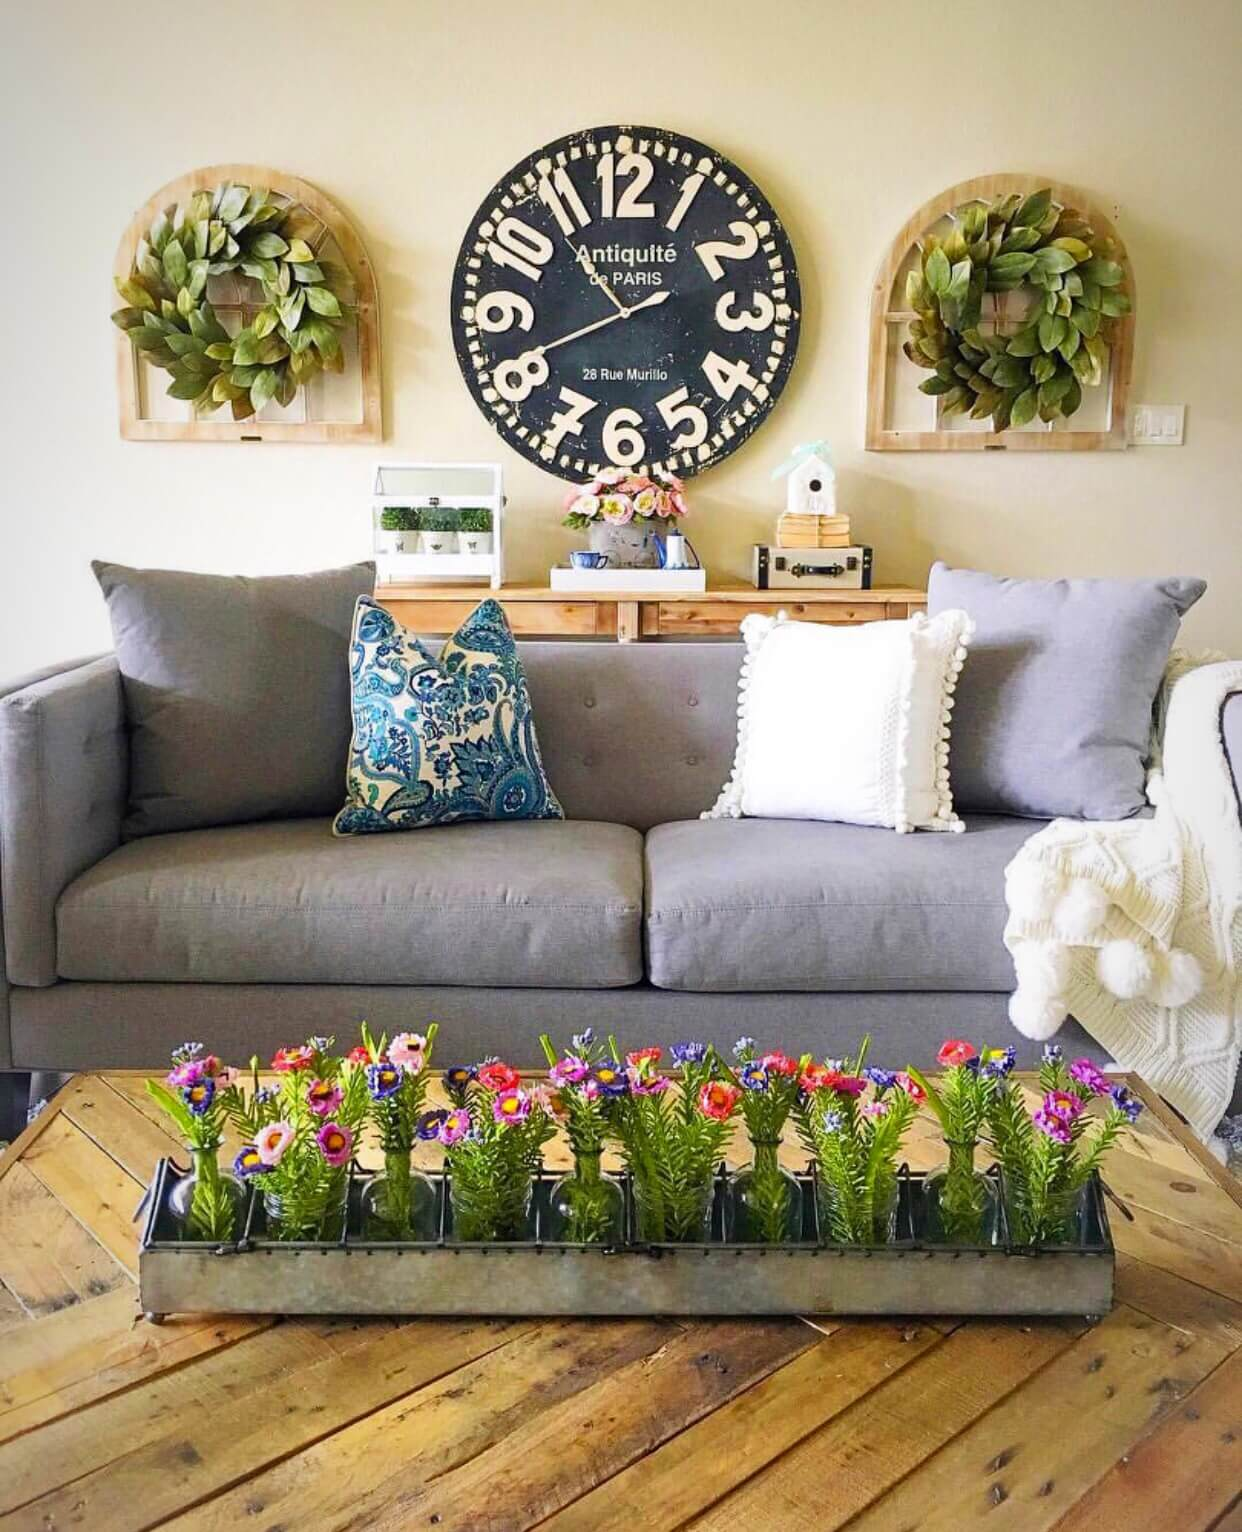 how to decorate large living room windows purple ideas pictures 33 best rustic wall decor and designs for 2019 clock with wreaths